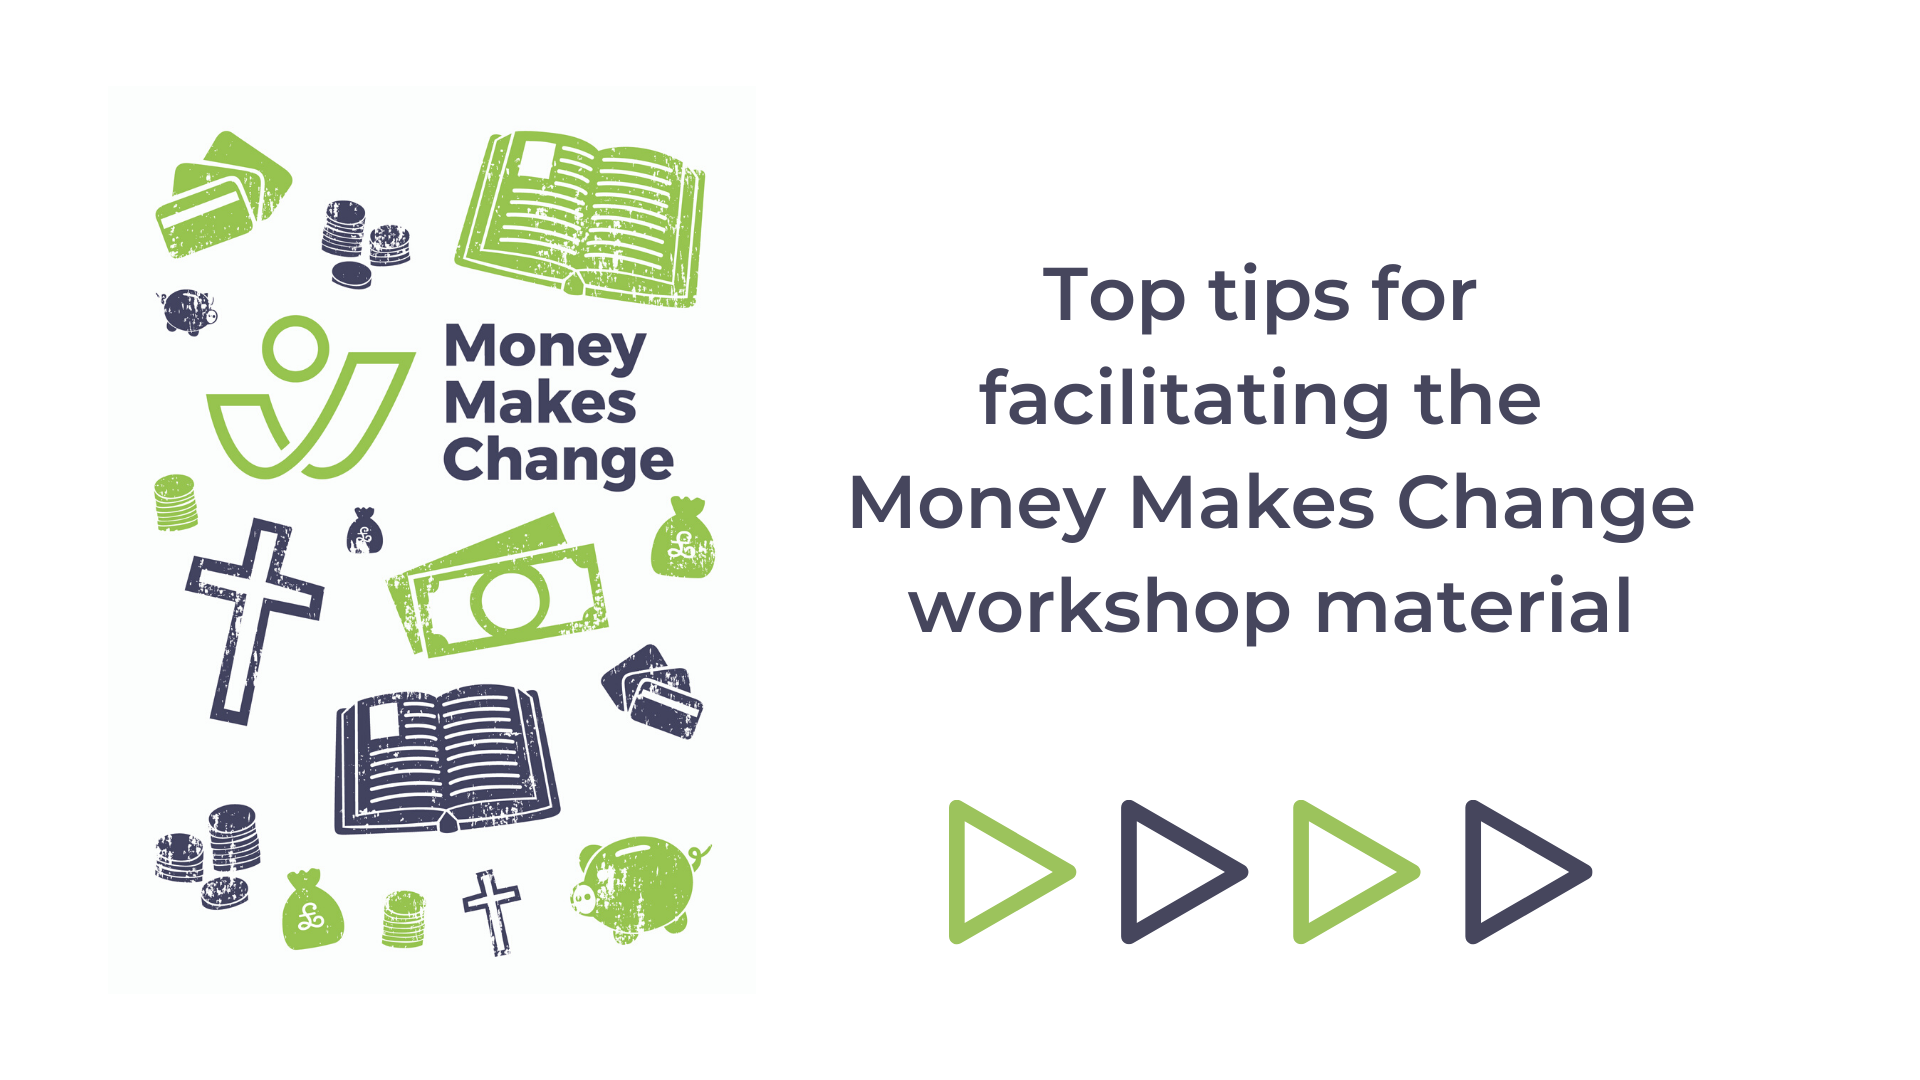 Top Tips for Facilitating the Money Makes Change Workshop